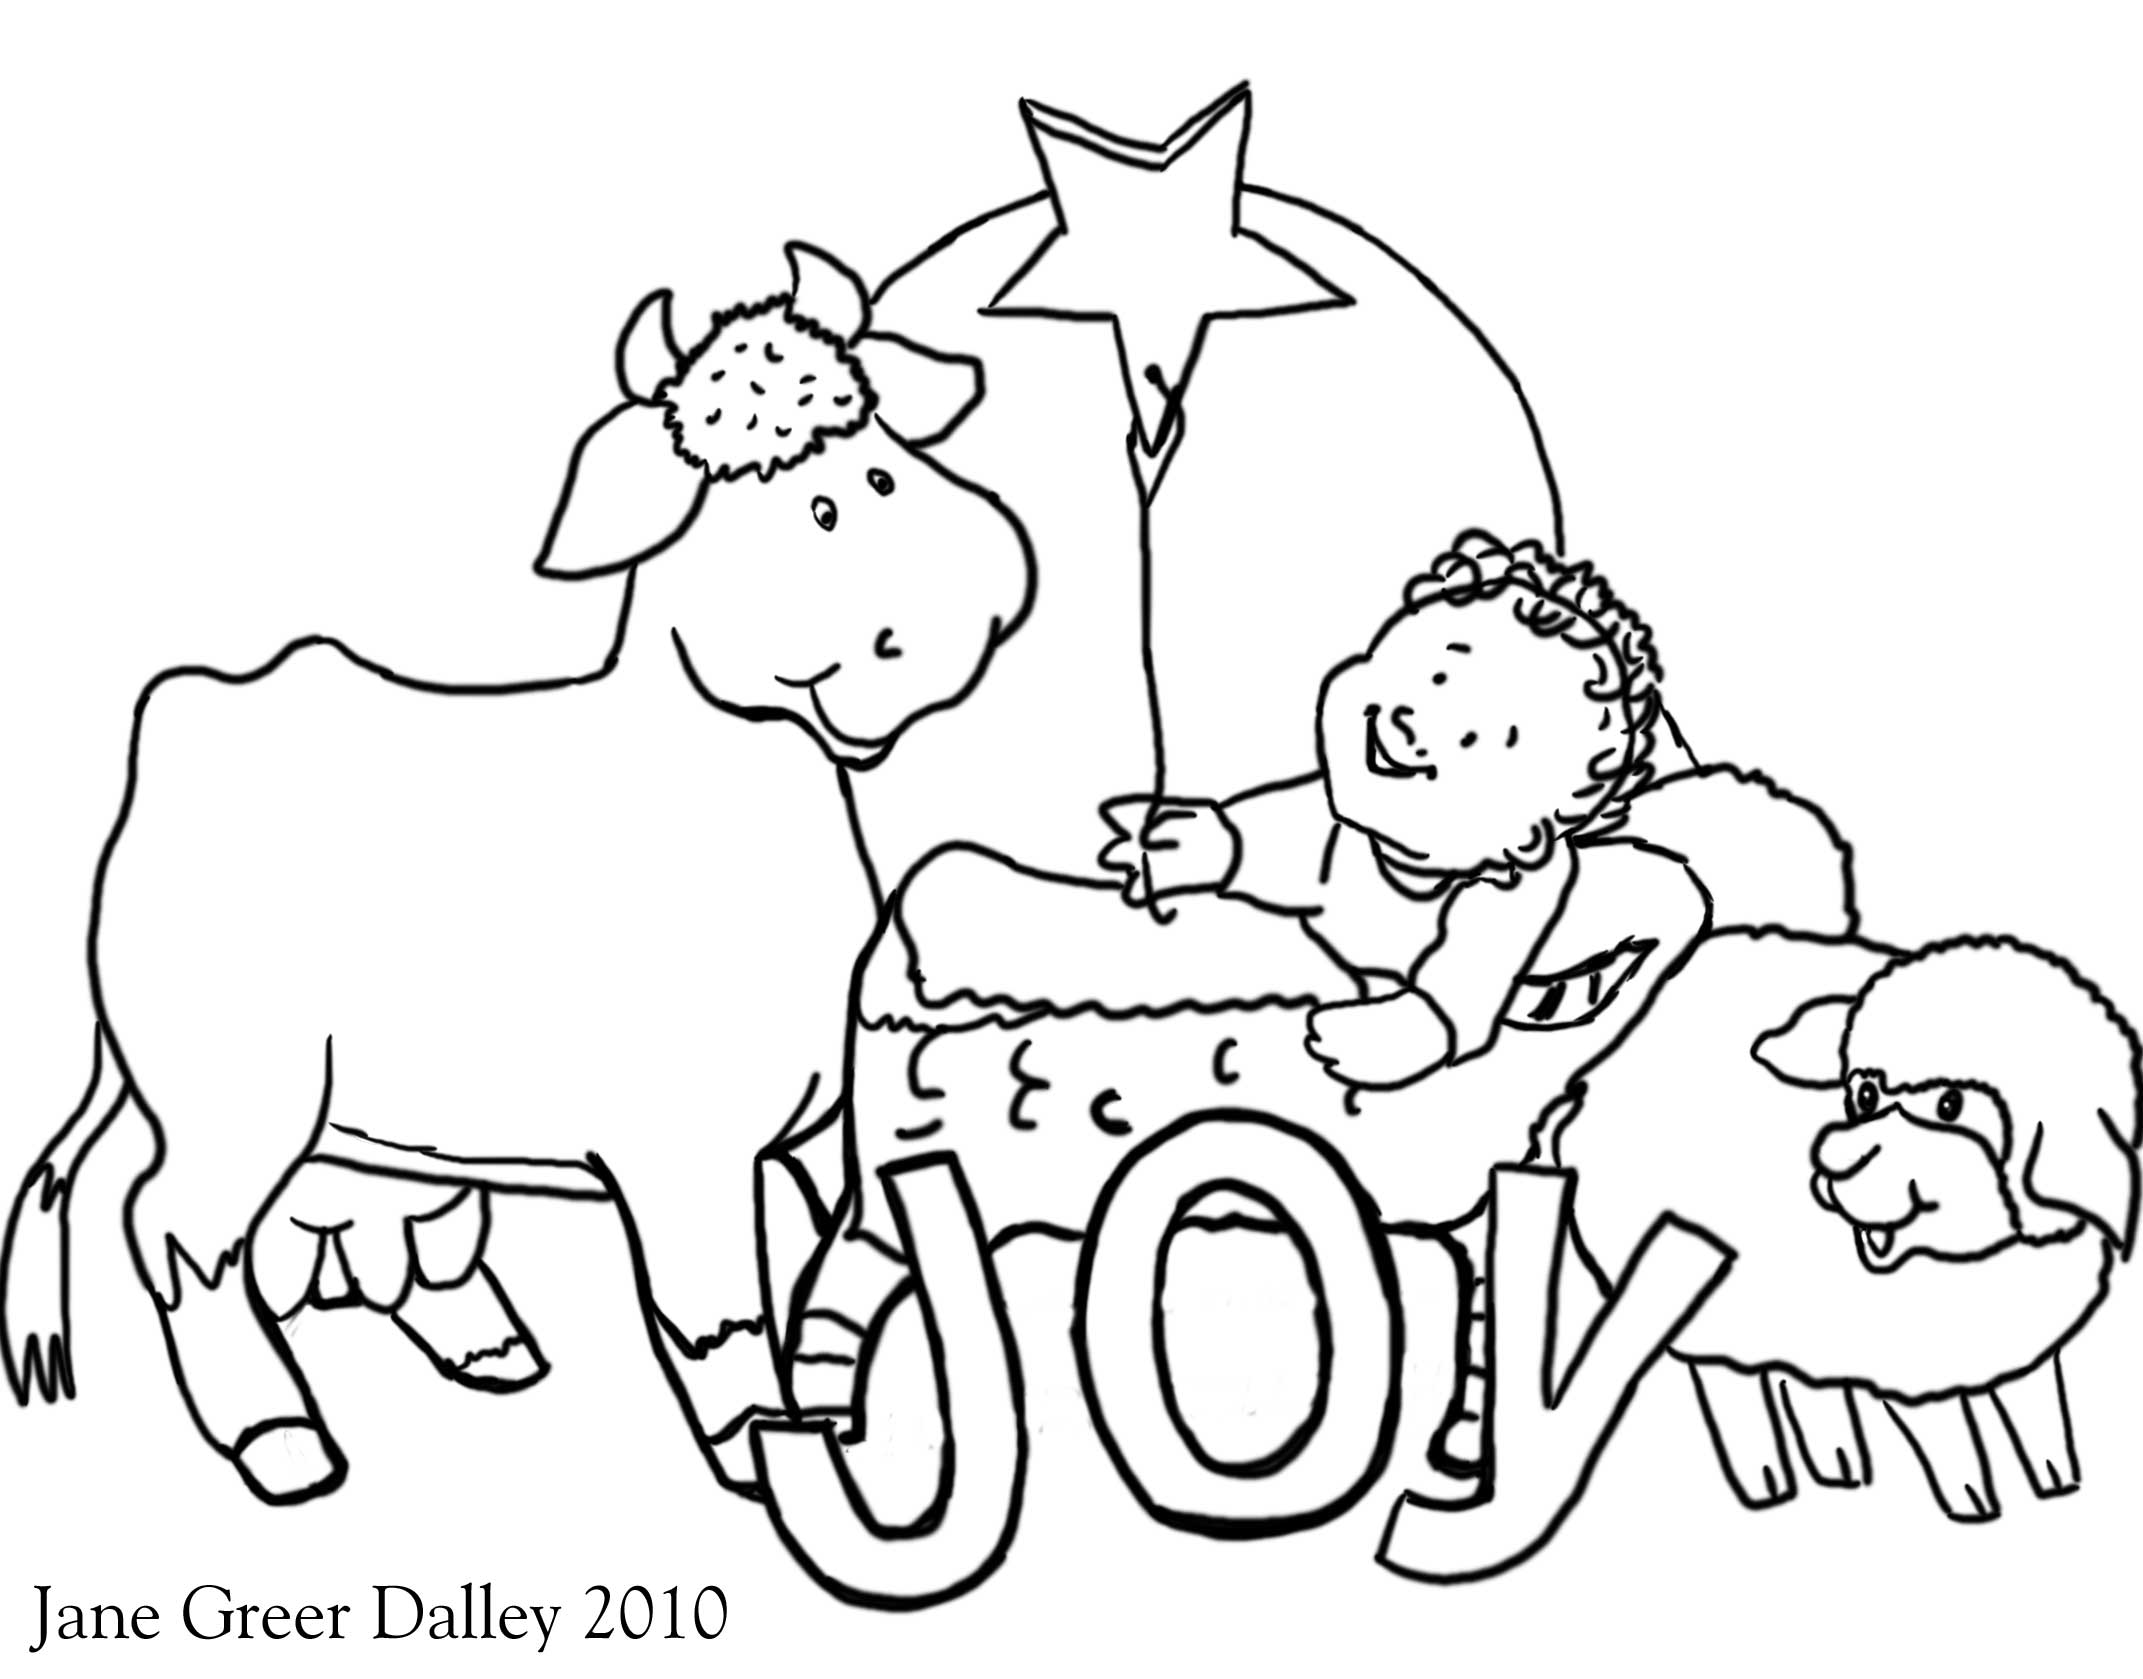 Coloring Pages For Christmas Nativity : Christmas Coloring Pages For Kids Nativity AZ Coloring Pages